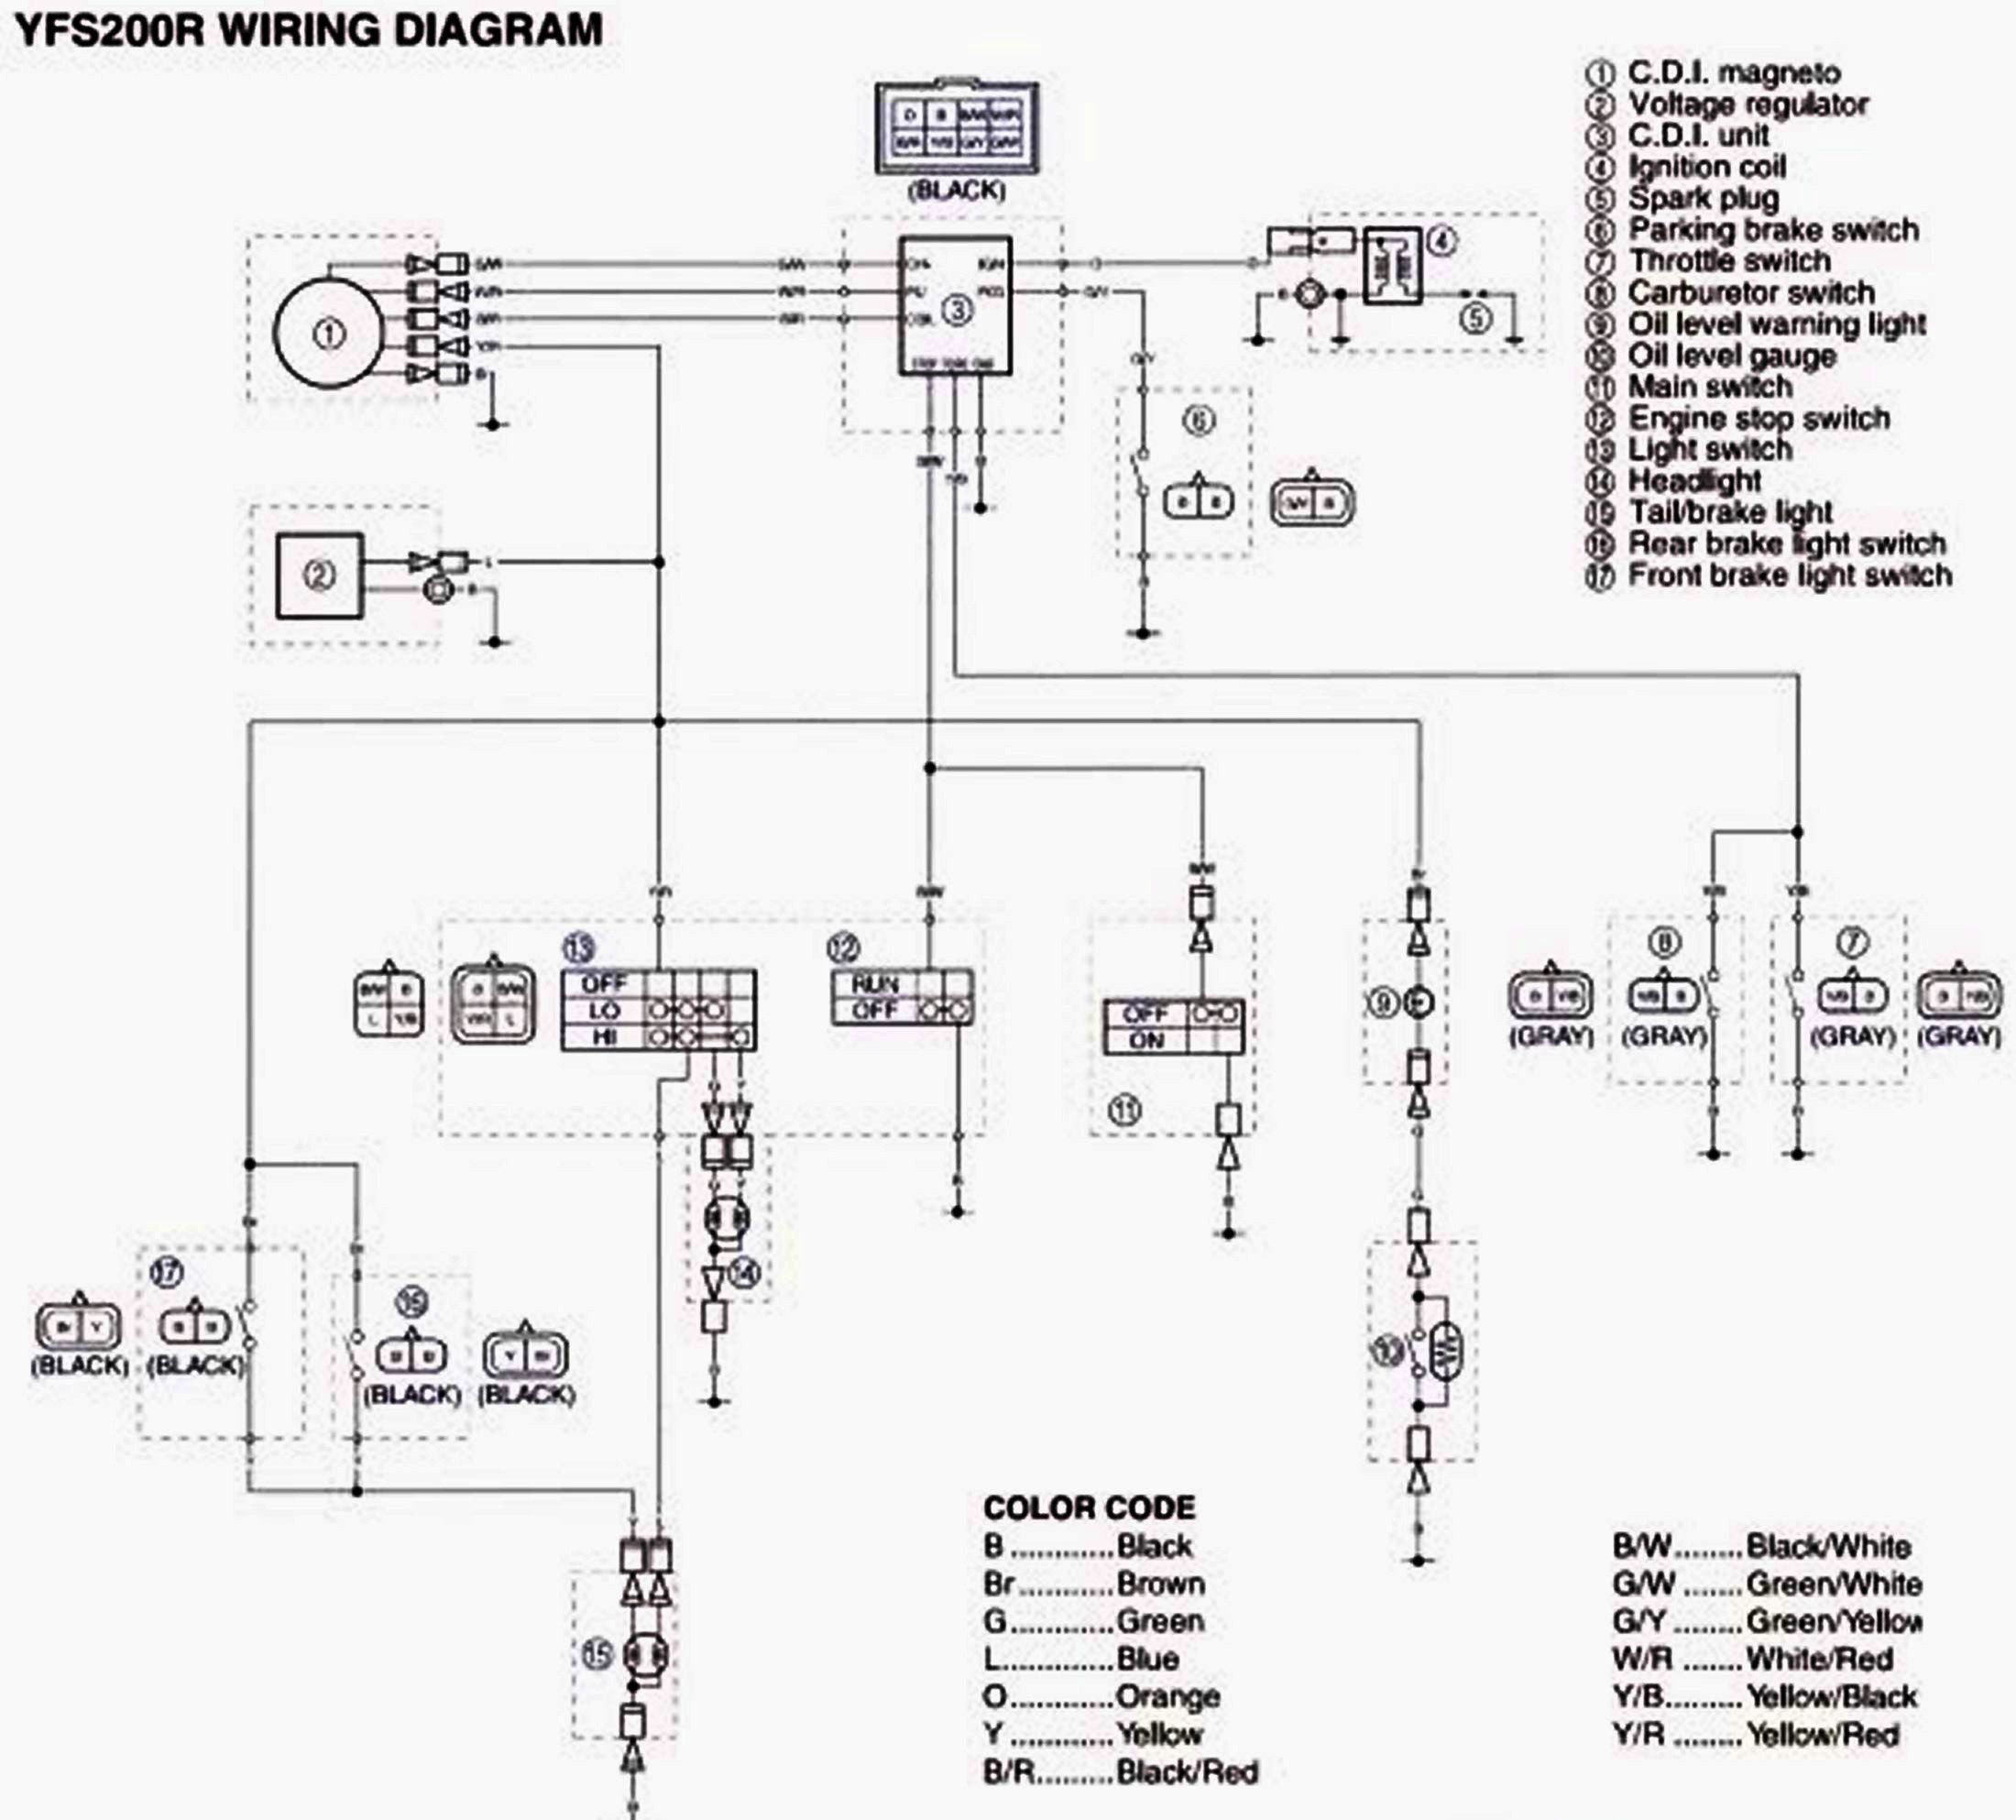 stock wiring diagrams- | blasterforum.com yamaha blaster wiring scamatic of yamaha blaster wiring diagram for 01 yfs200r #3